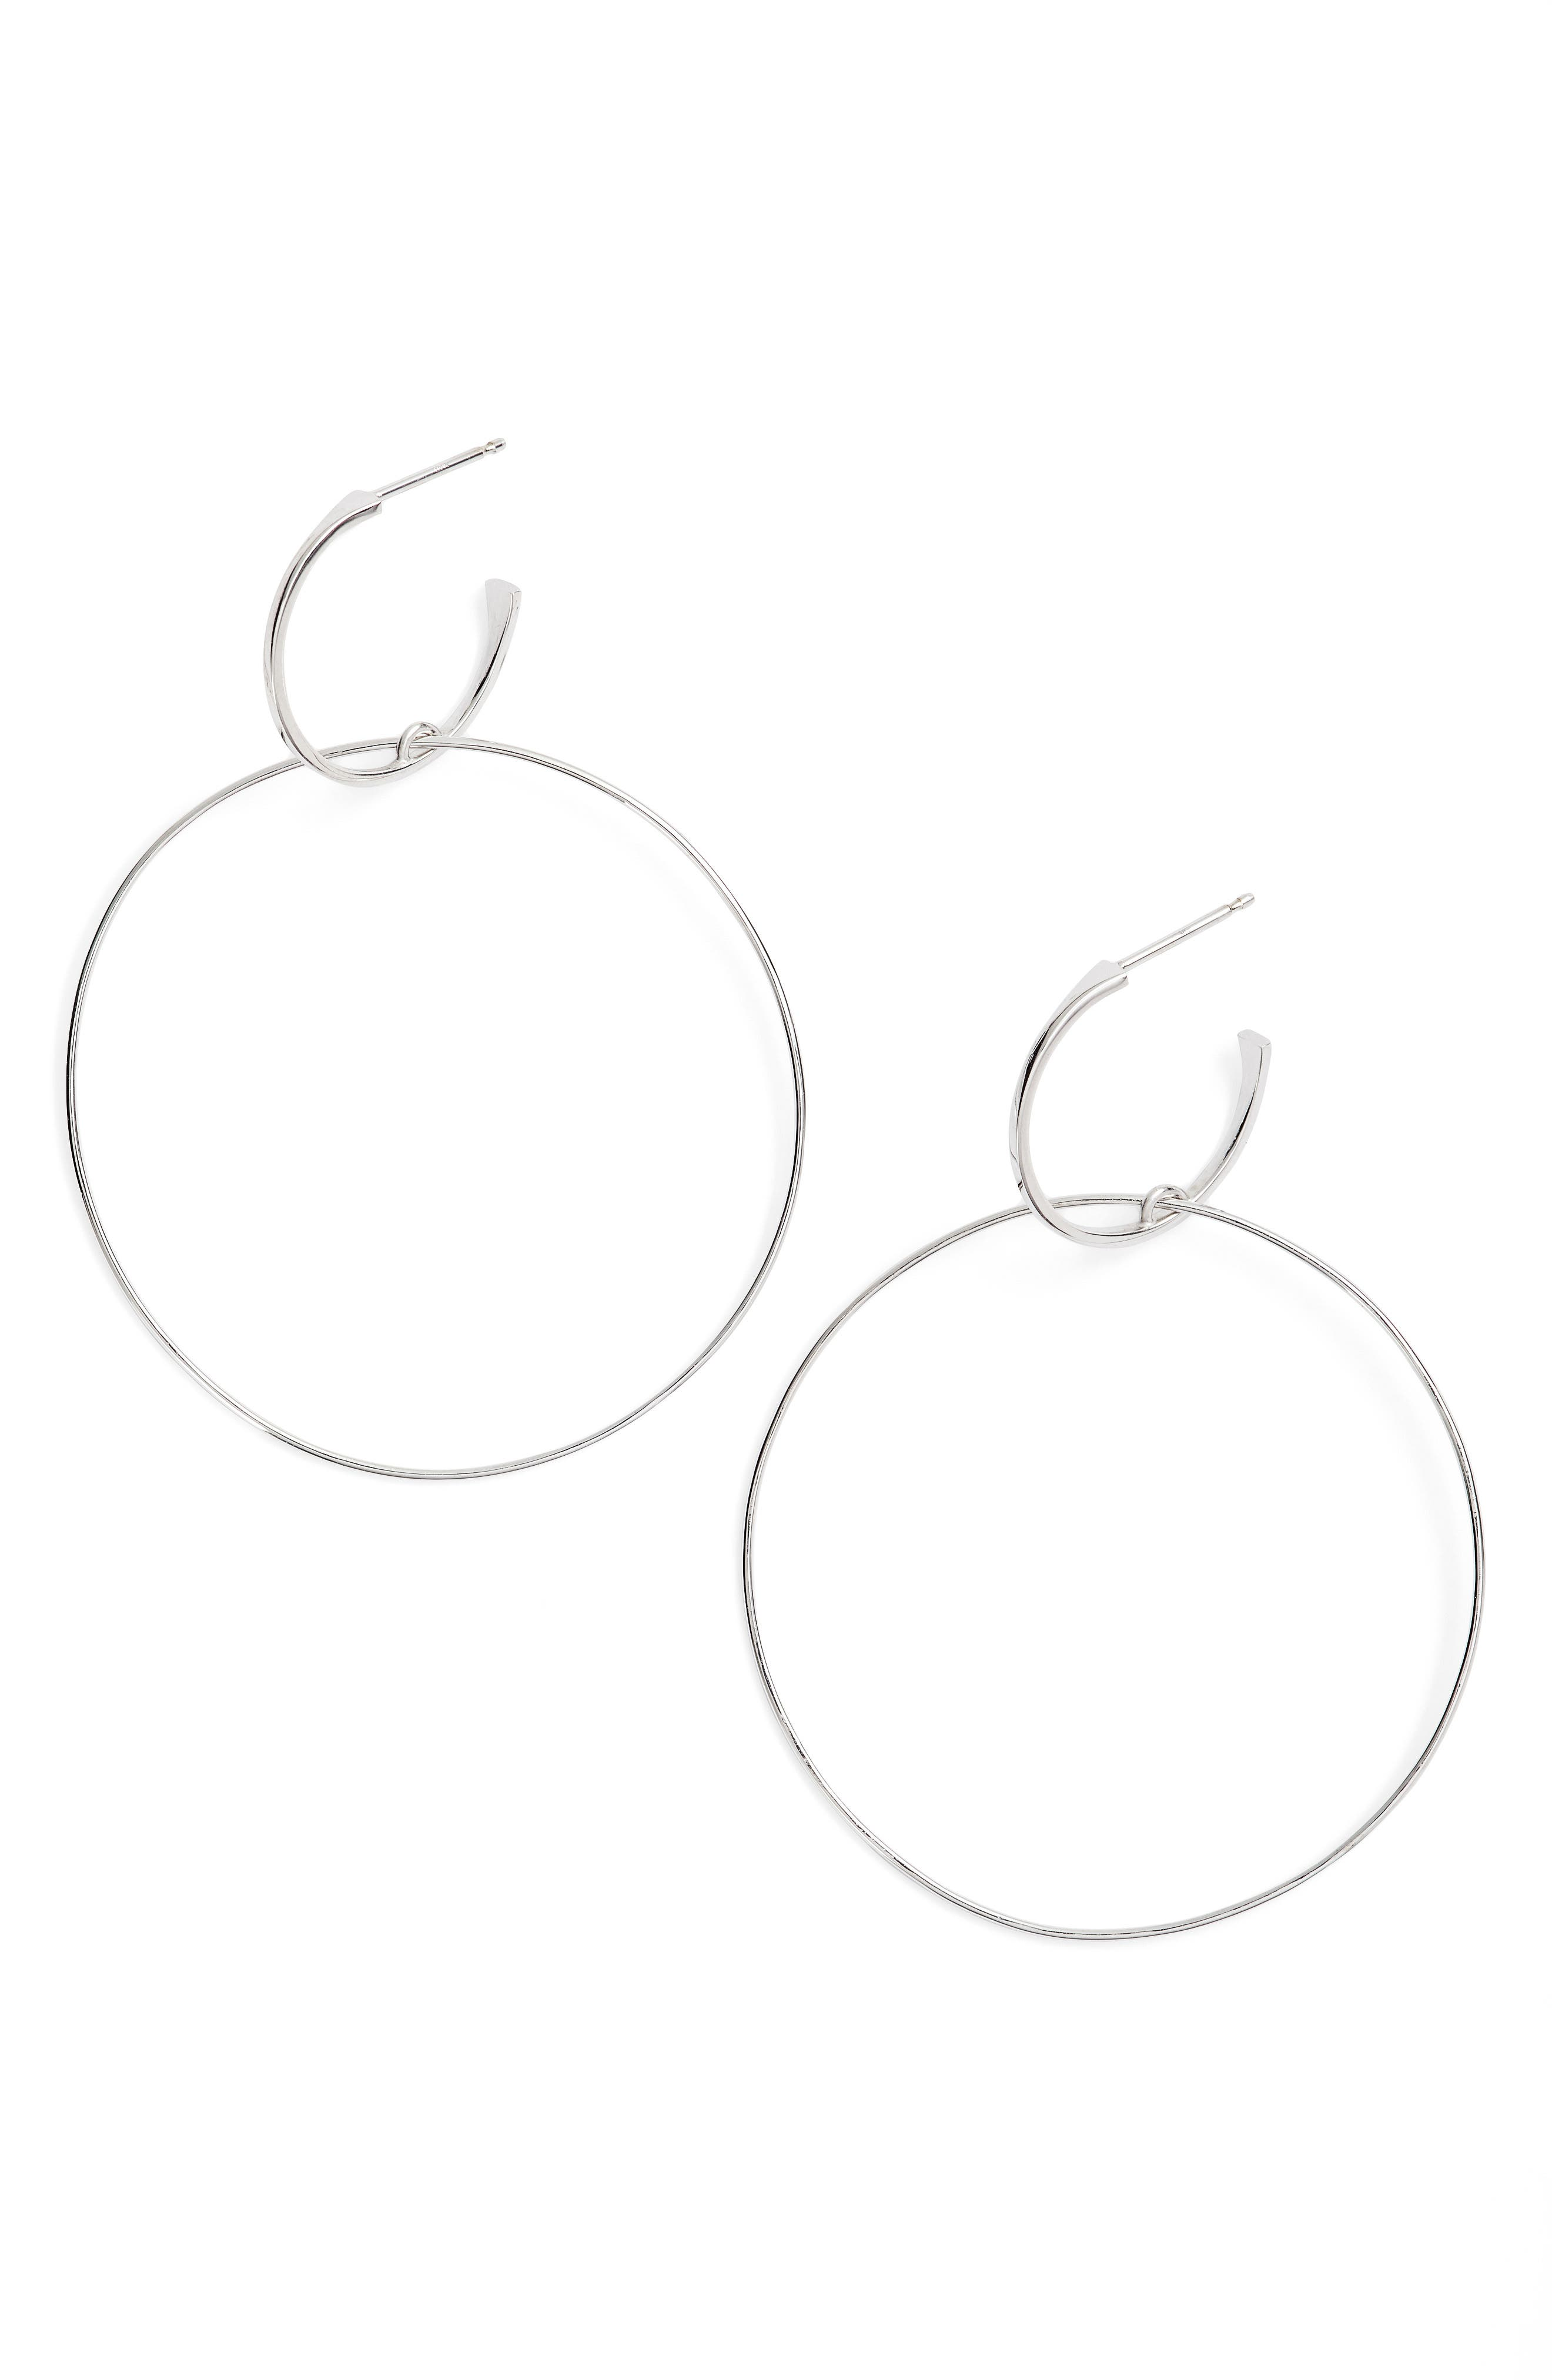 Bond Small Double Hoop Earrings,                         Main,                         color, White Gold